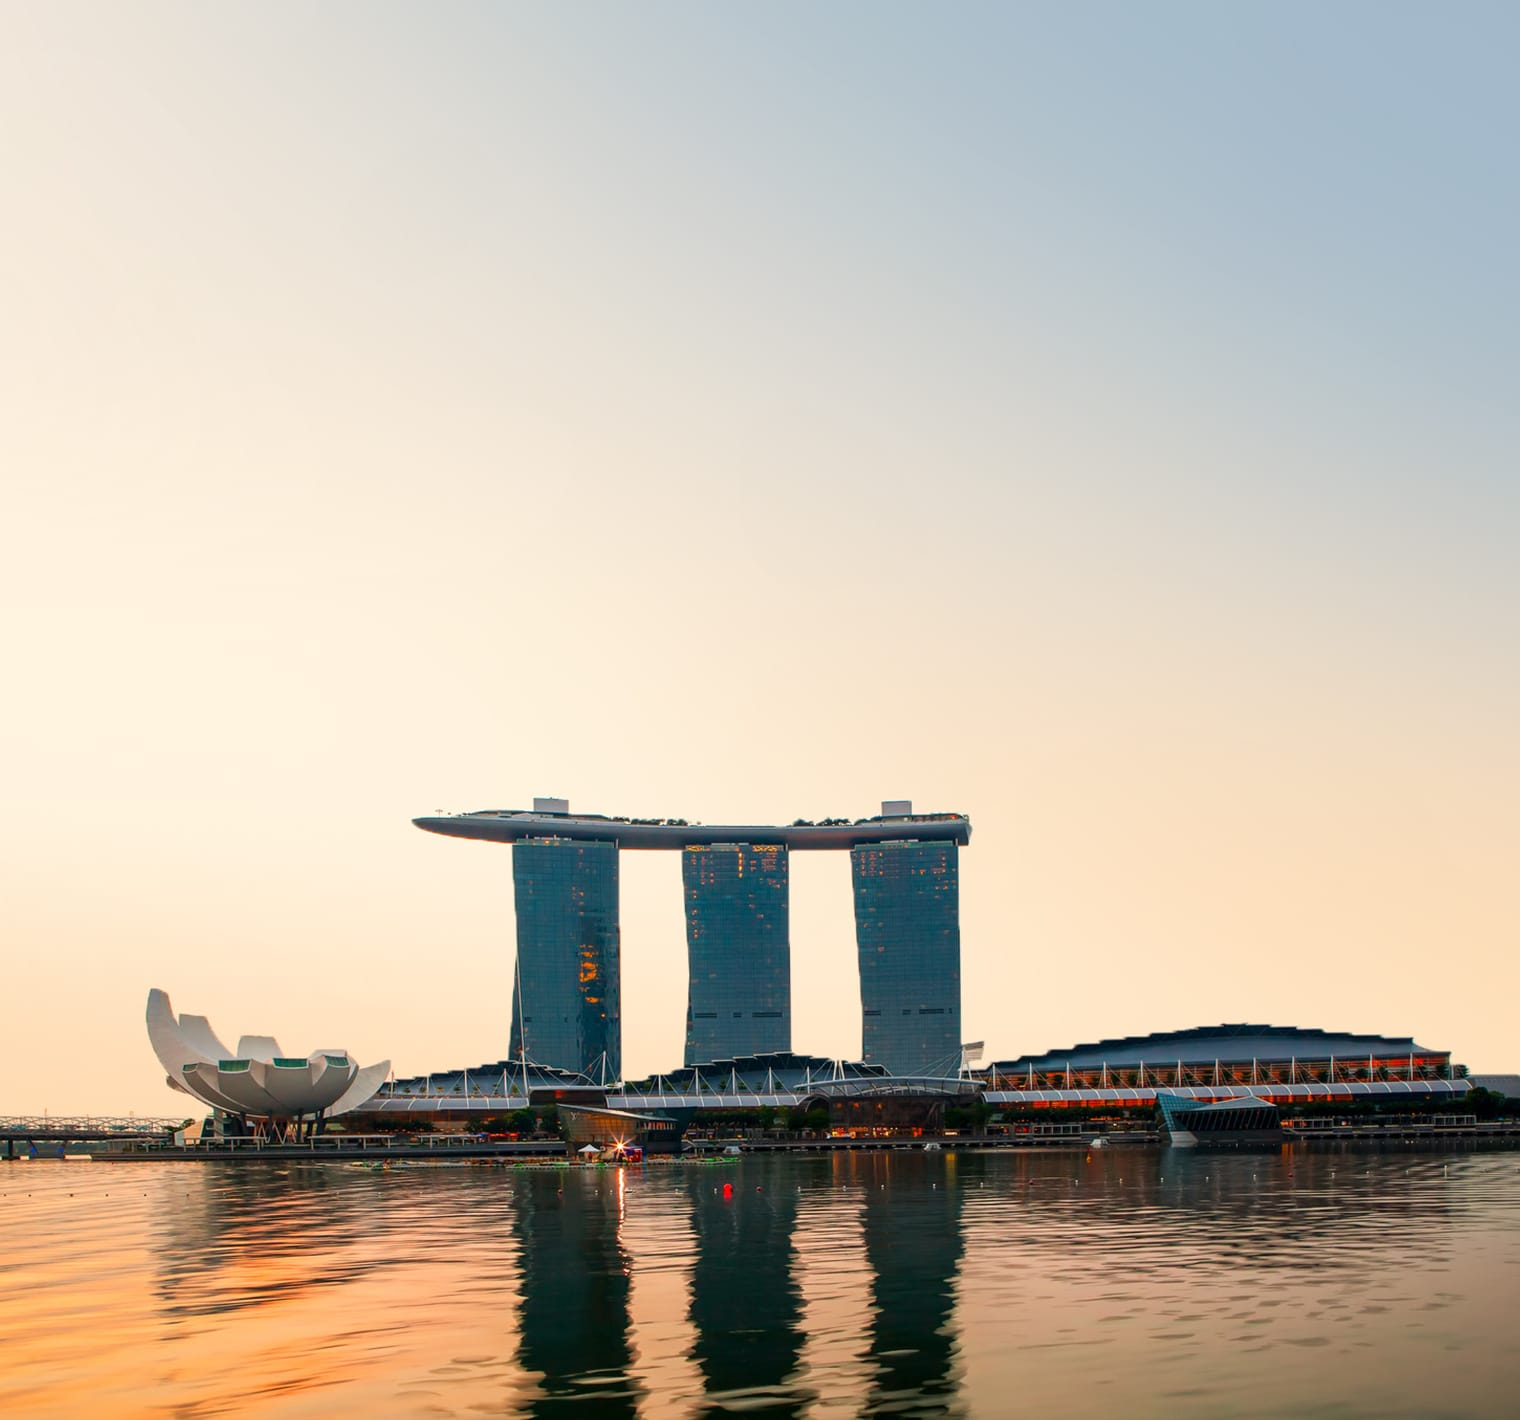 Looking for B2B lead generation services in Singapore?